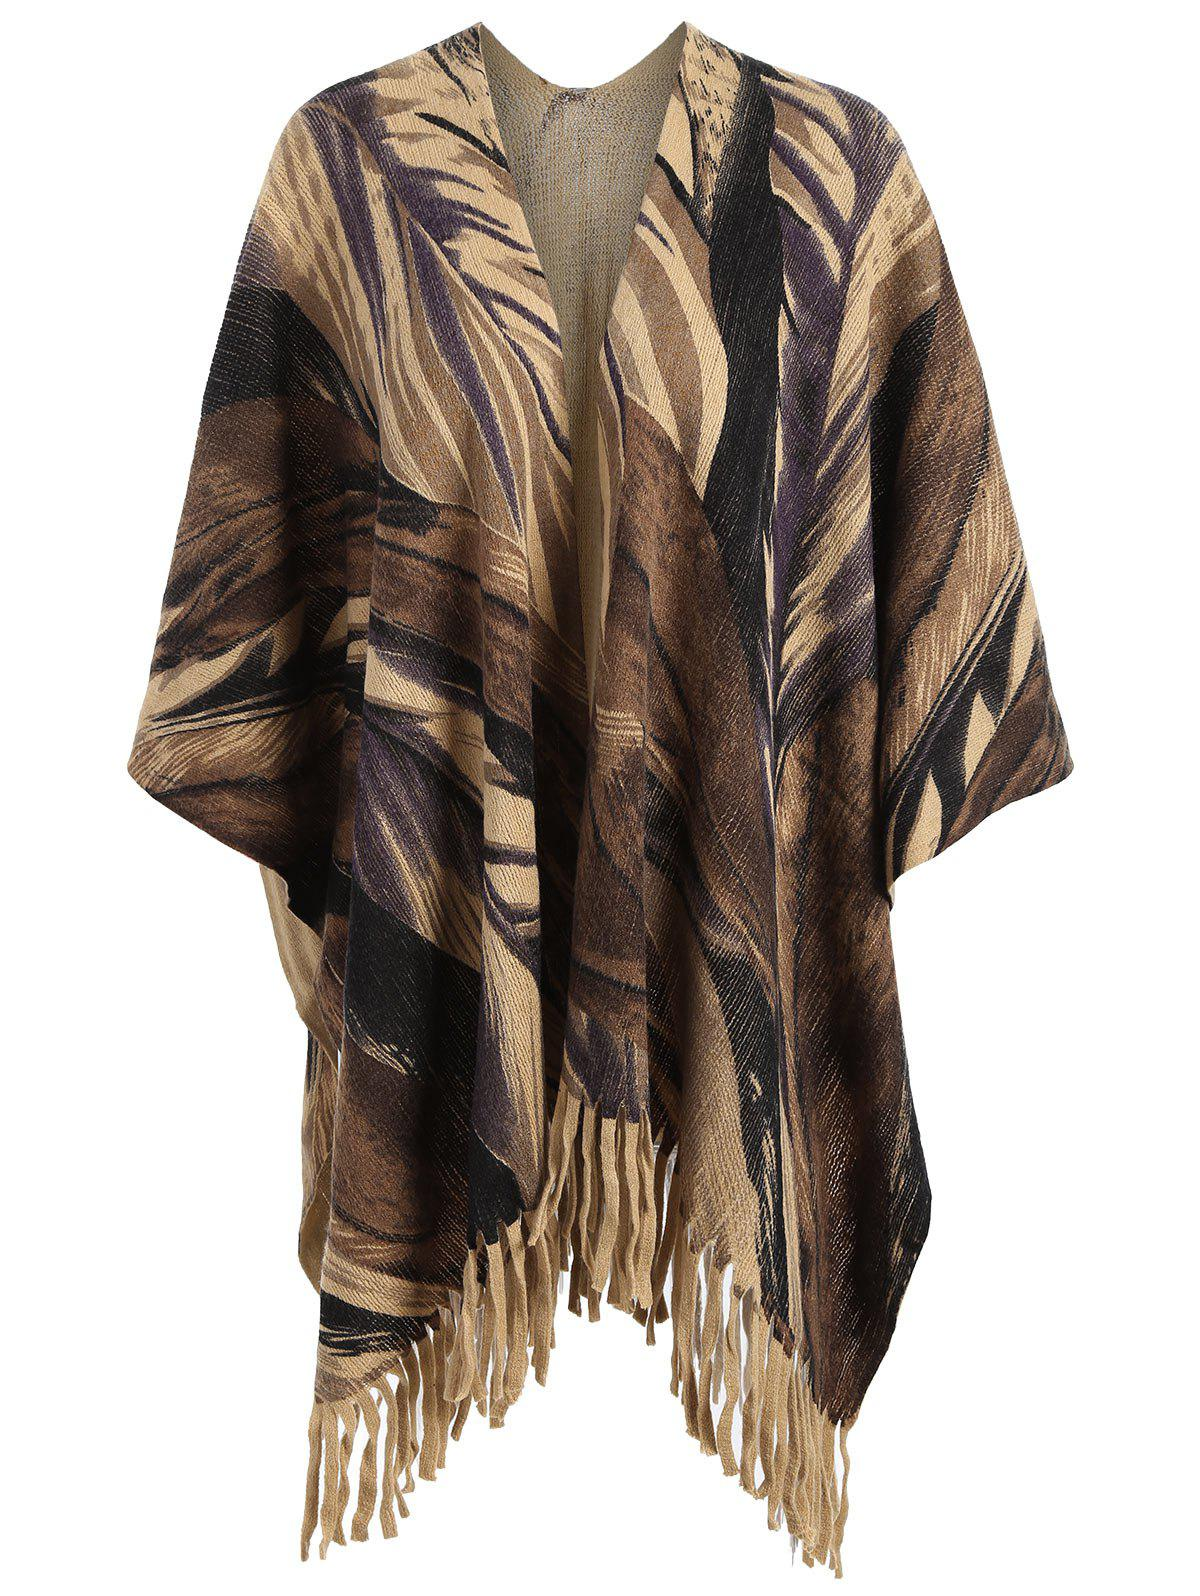 Printed Fringed Plus Size Knit CapeWOMEN<br><br>Size: ONE SIZE; Color: BROWN; Type: Cardigans; Material: Polyester,Spandex; Sleeve Length: Full; Collar: Collarless; Style: Fashion; Season: Fall; Pattern Type: Print; Weight: 0.4200kg; Package Contents: 1 x Cape;